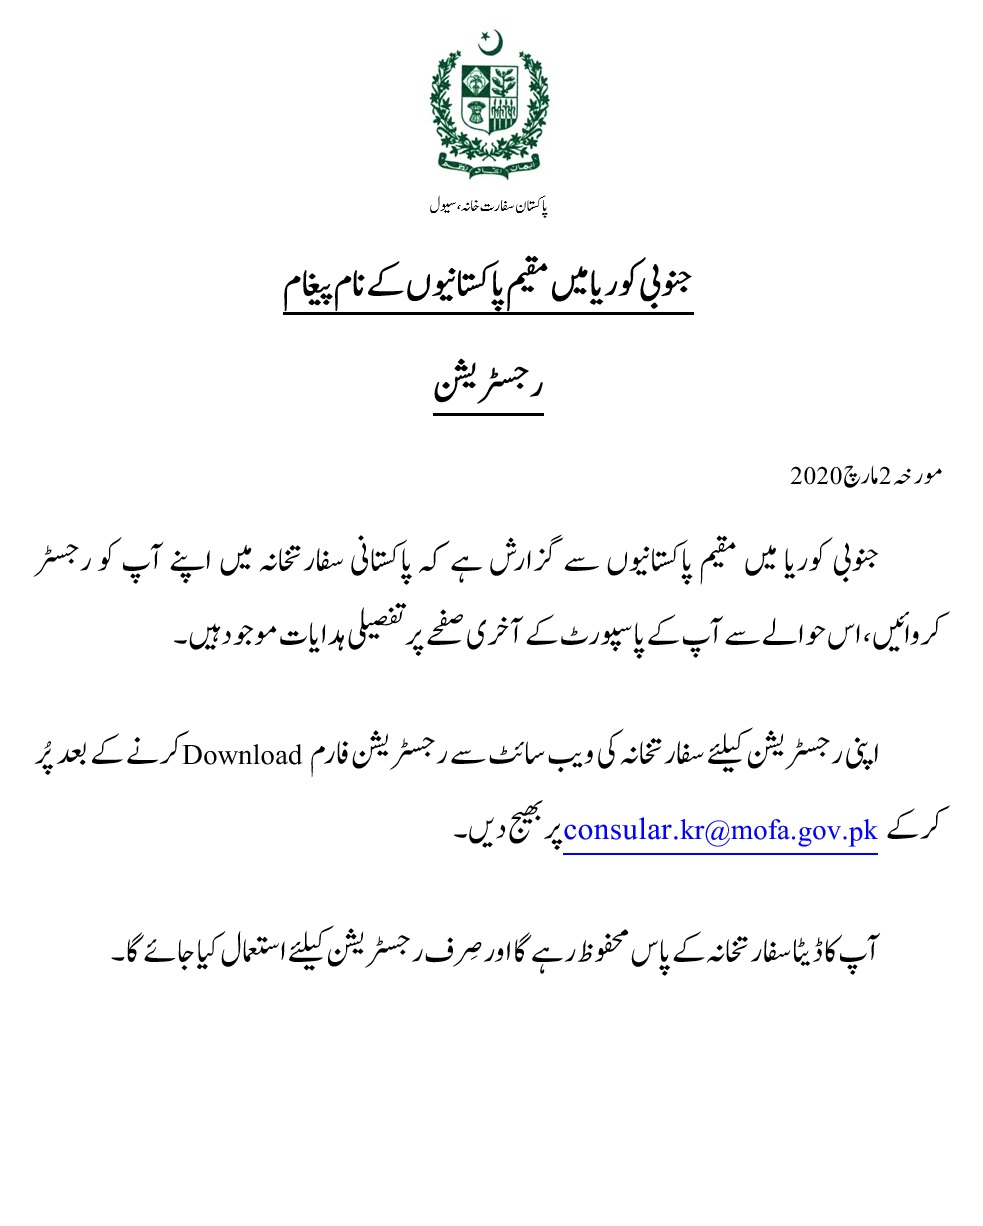 Press Release regarding Registration